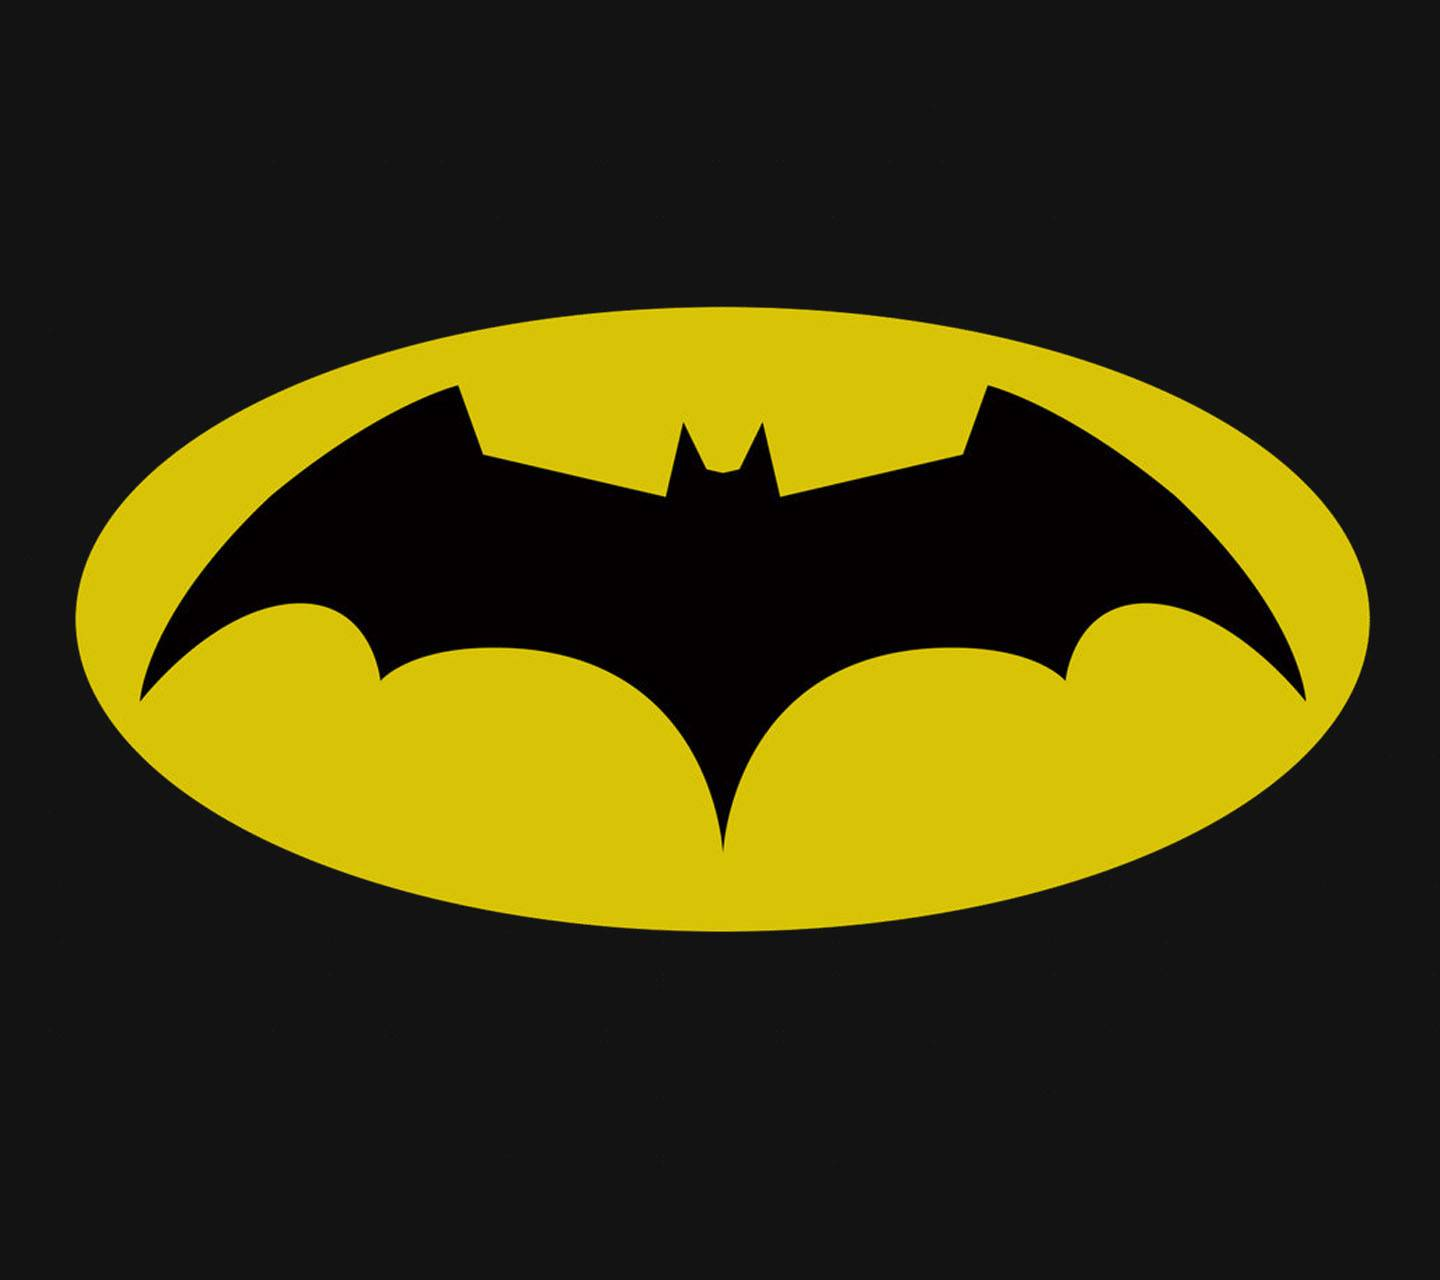 Bat Symbol Wallpaper By Thedrownedgod 50 Free On Zedge